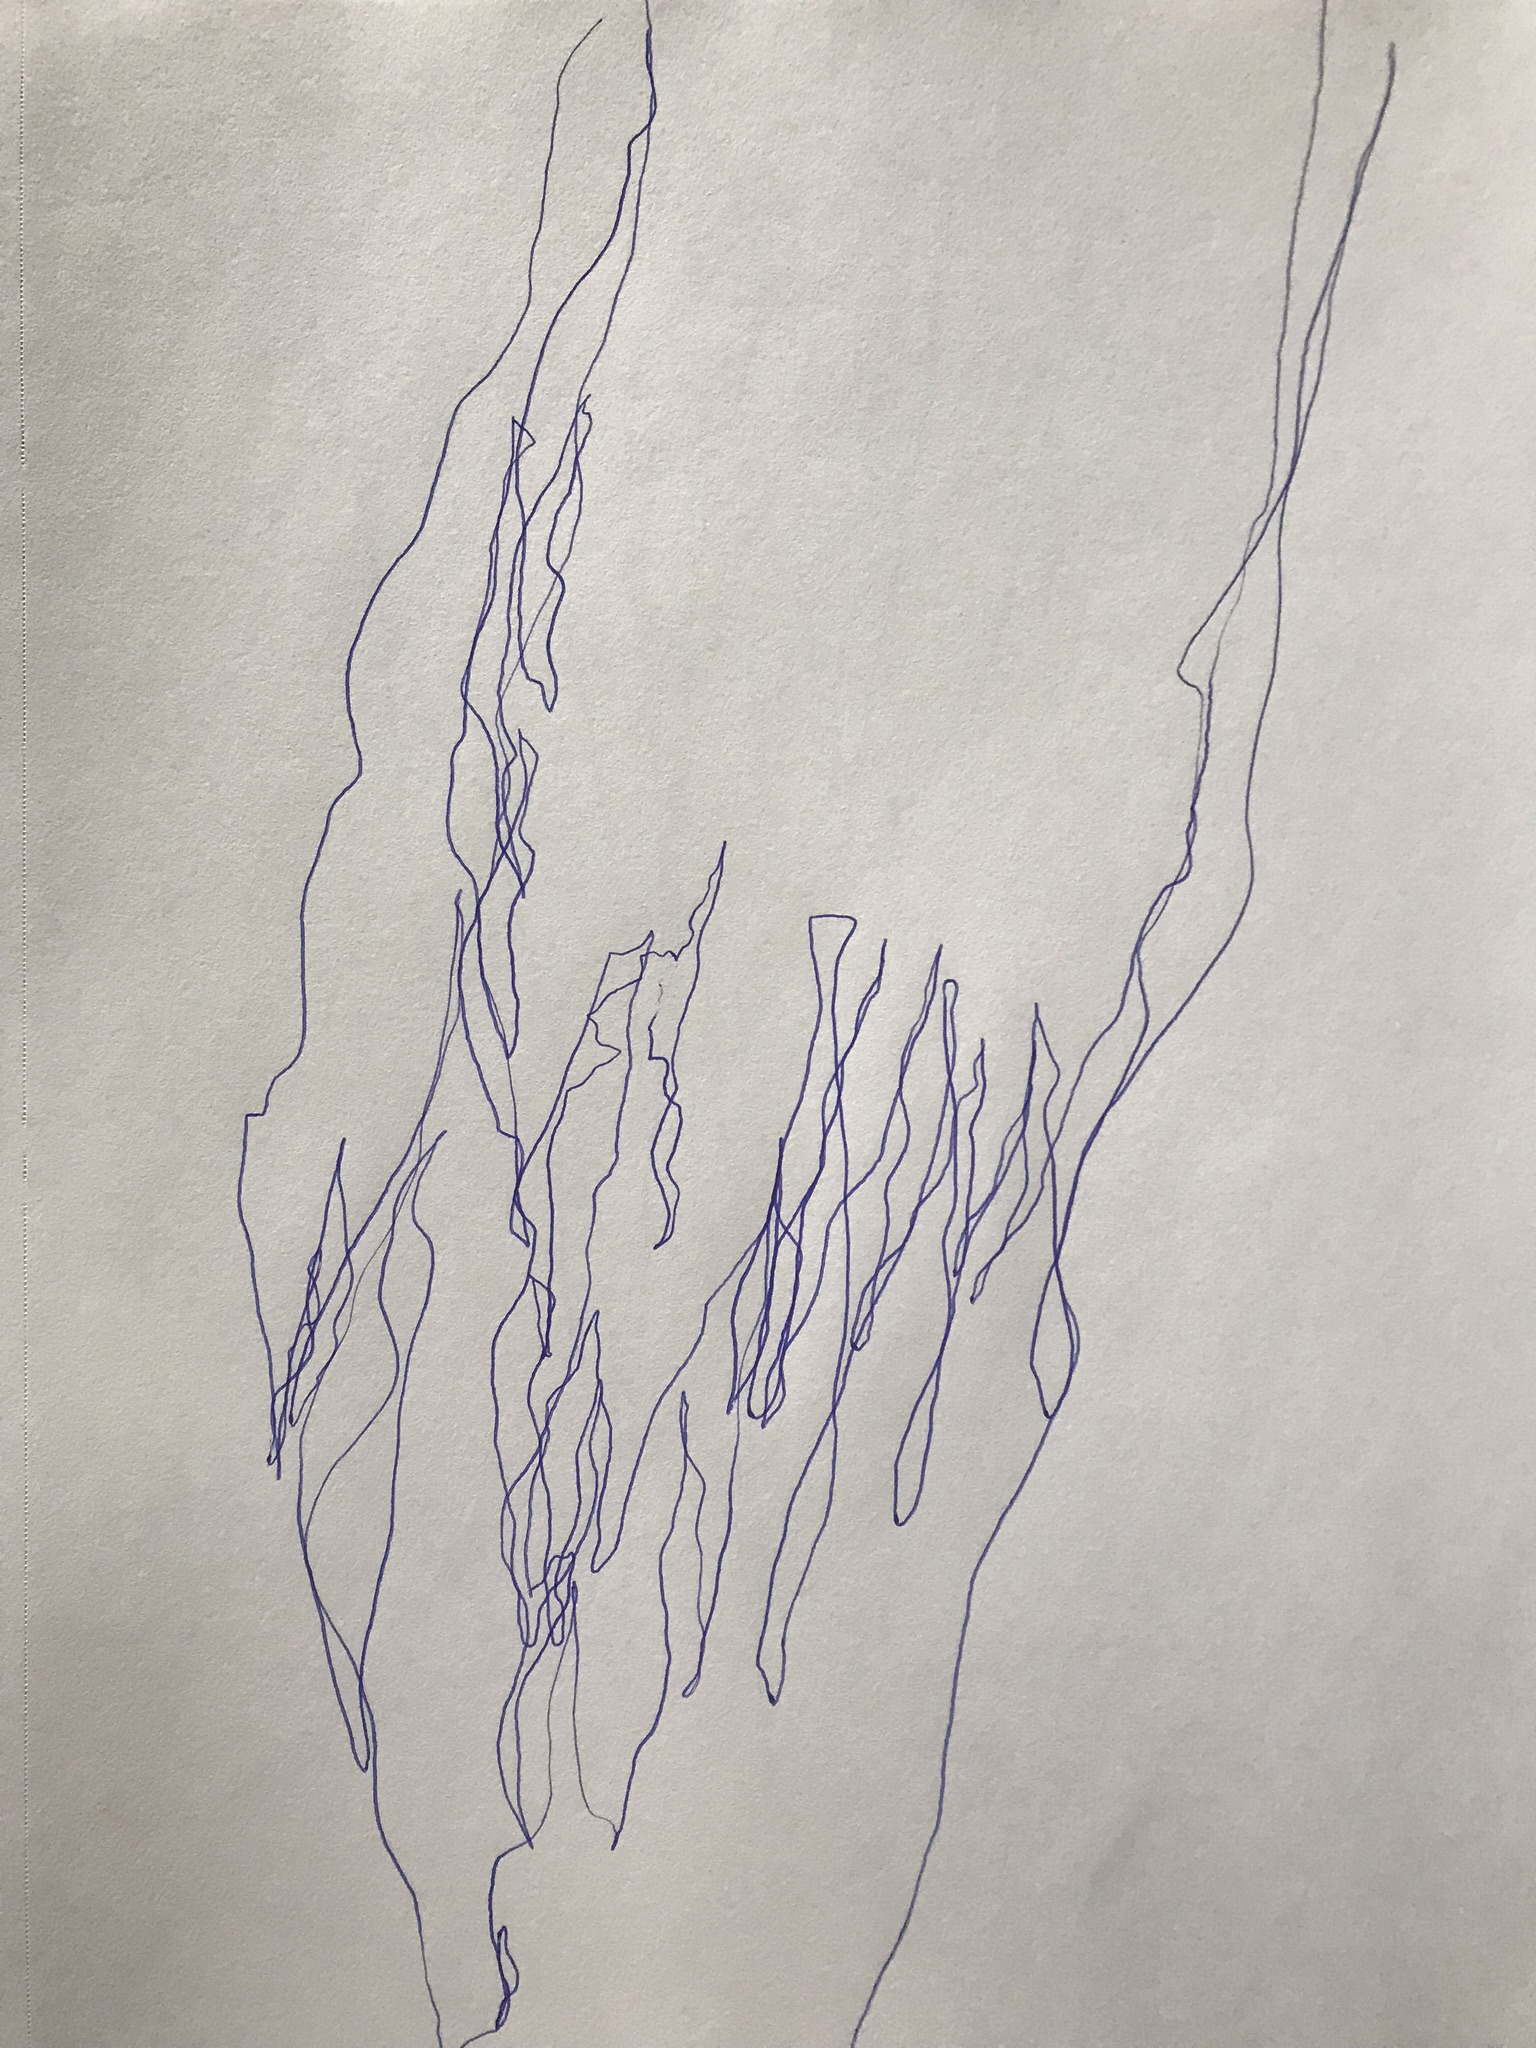 Night drawing, after Cy Twombly April 8, 2019 Jennifer Davey